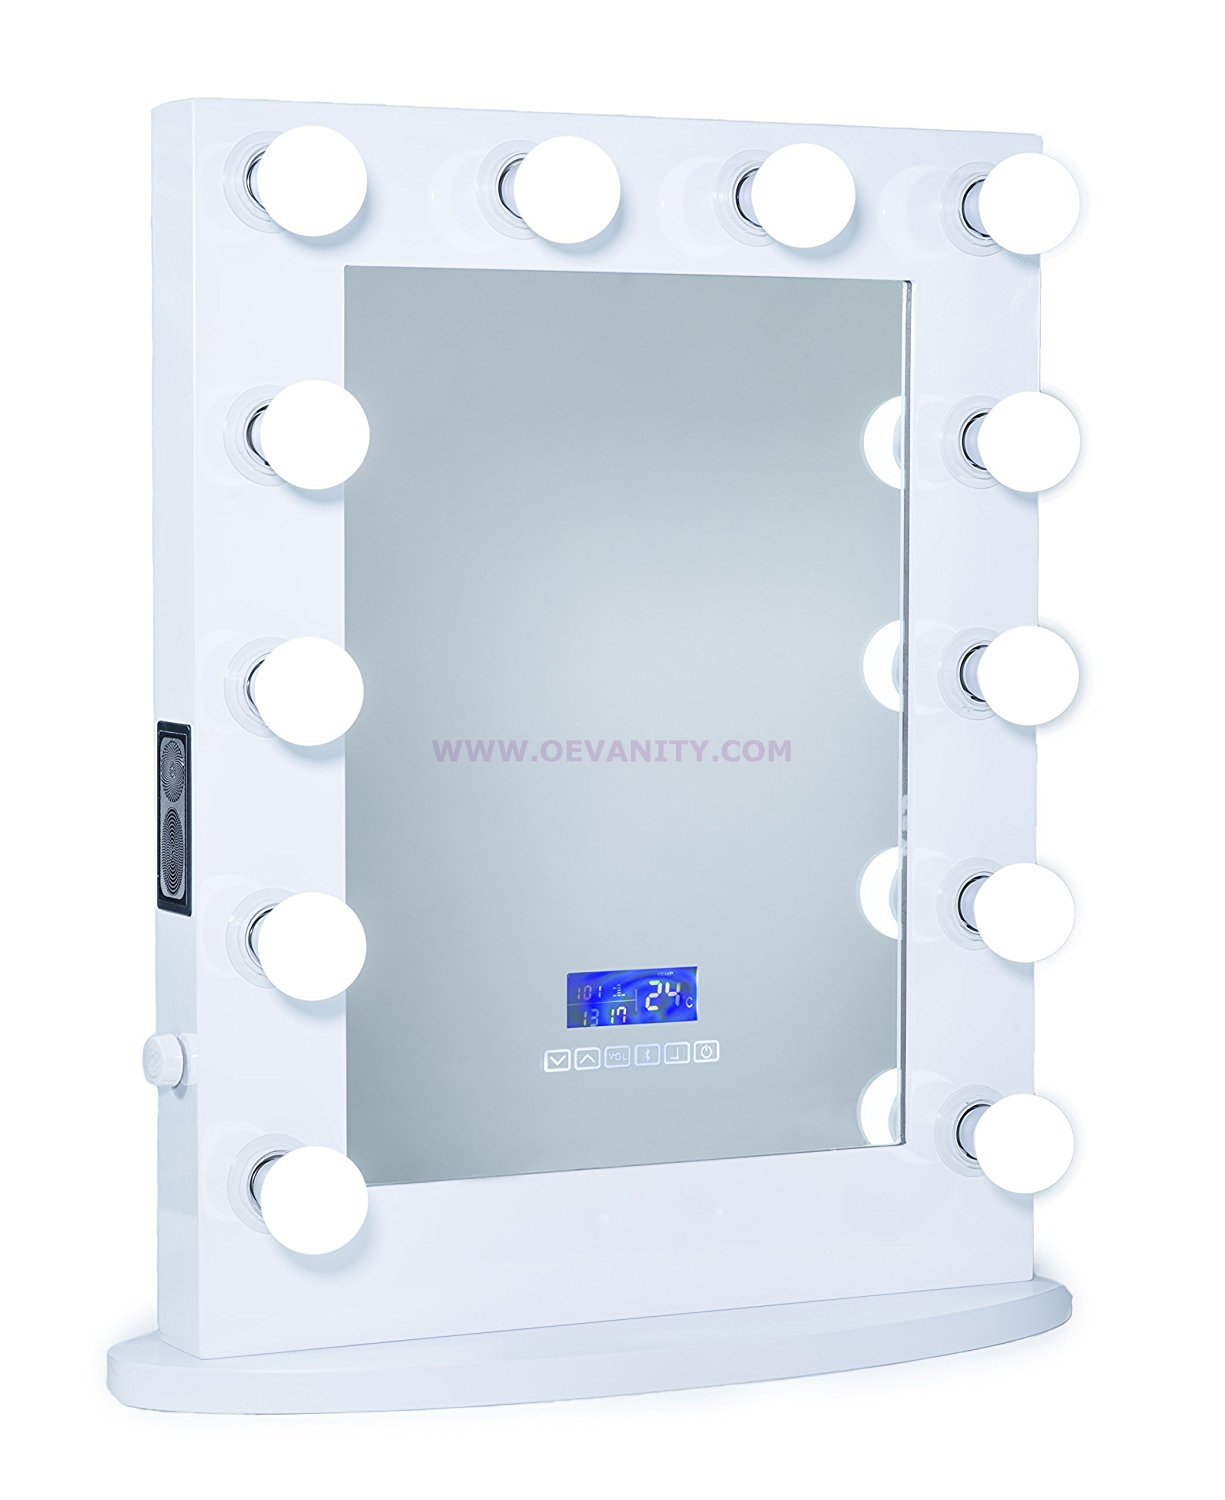 640102 Diamond XL Mirror Finish Hollywood Makeup Mirror Dimmable